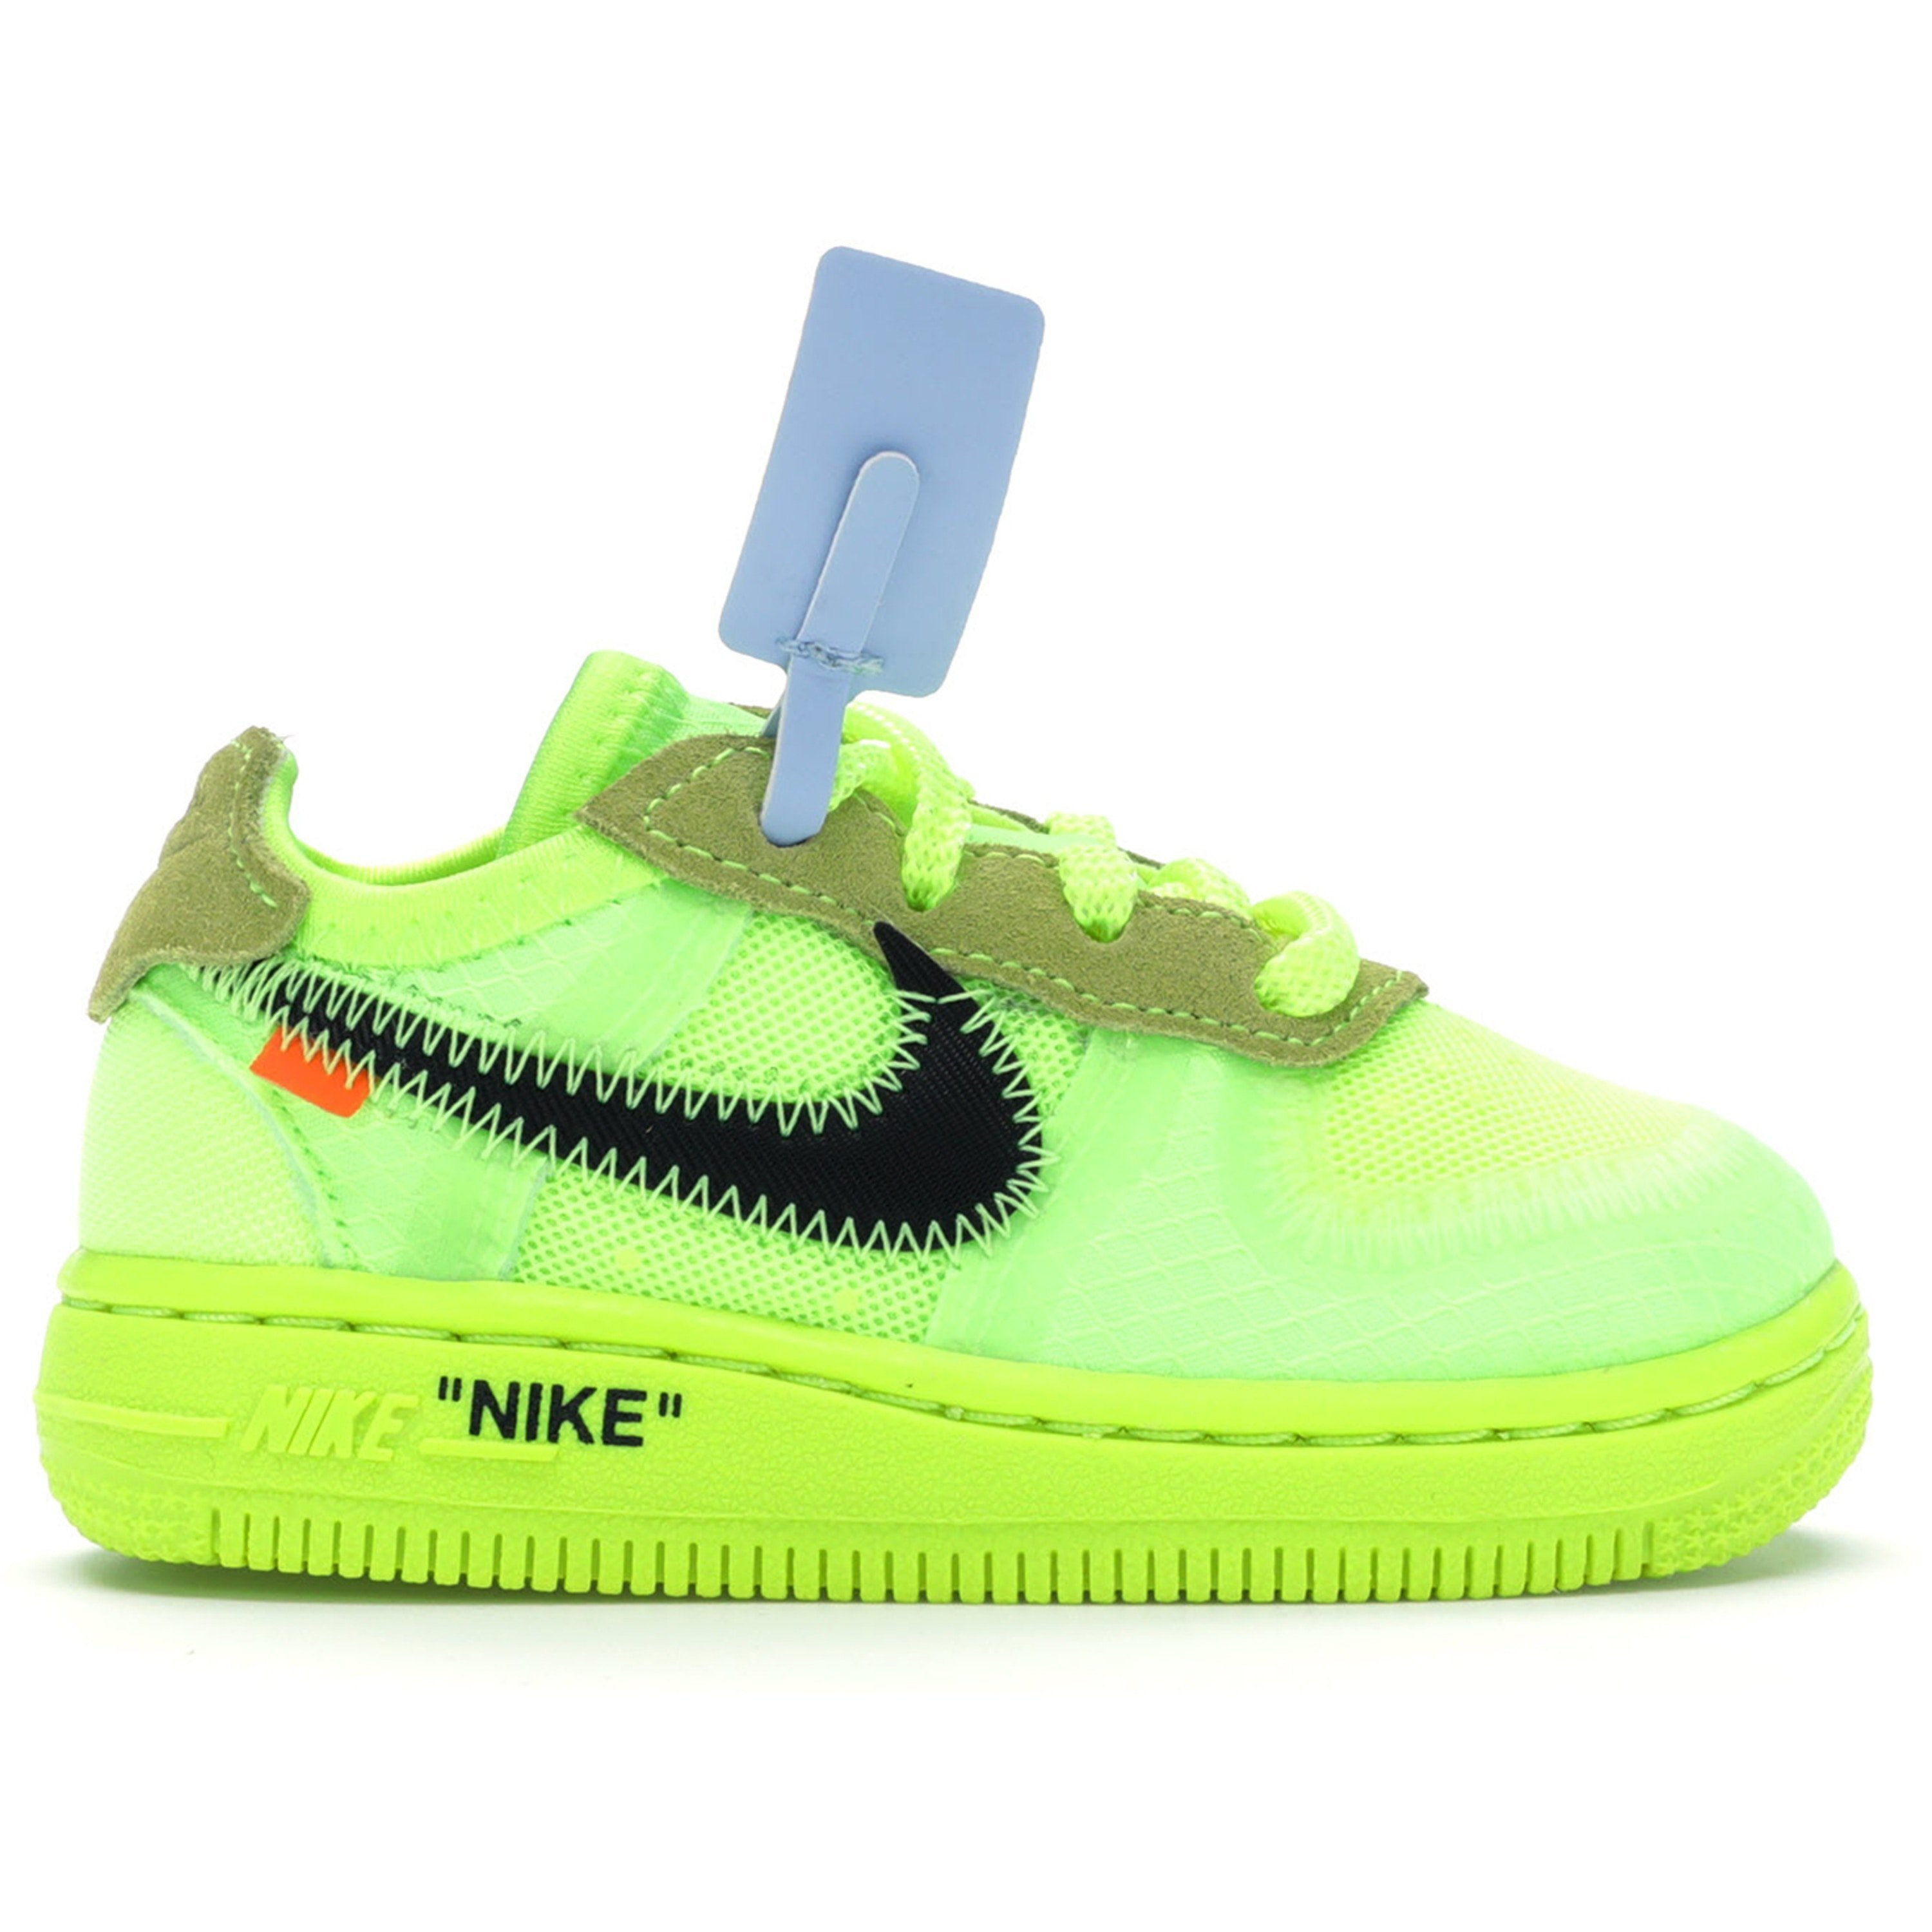 Nike Air Force 1 Low Off White Volt (TD) (BV0853 700)